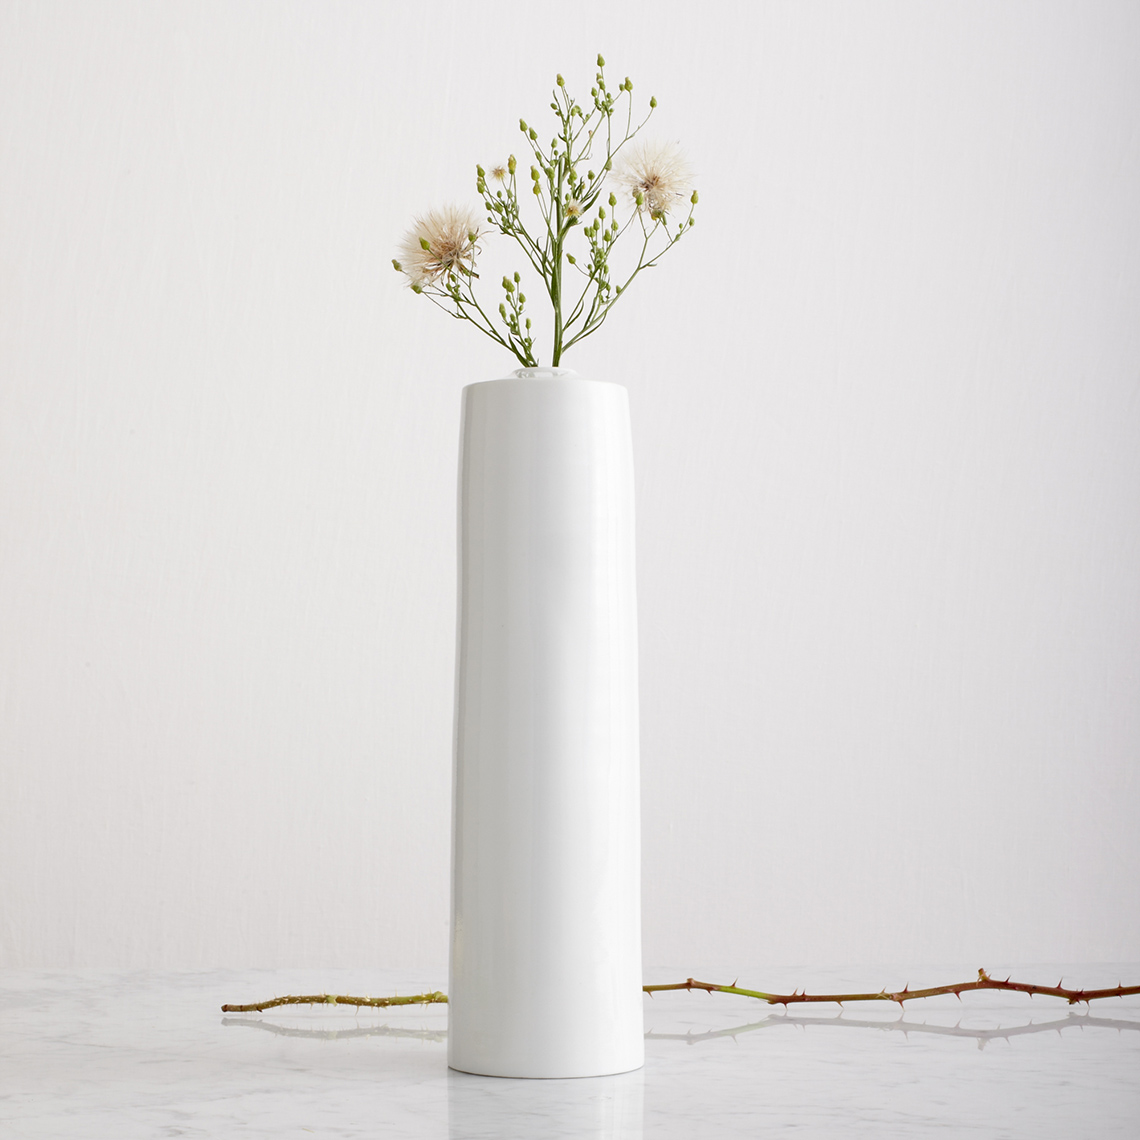 saikai_essence_vase_10.5in_tall_1